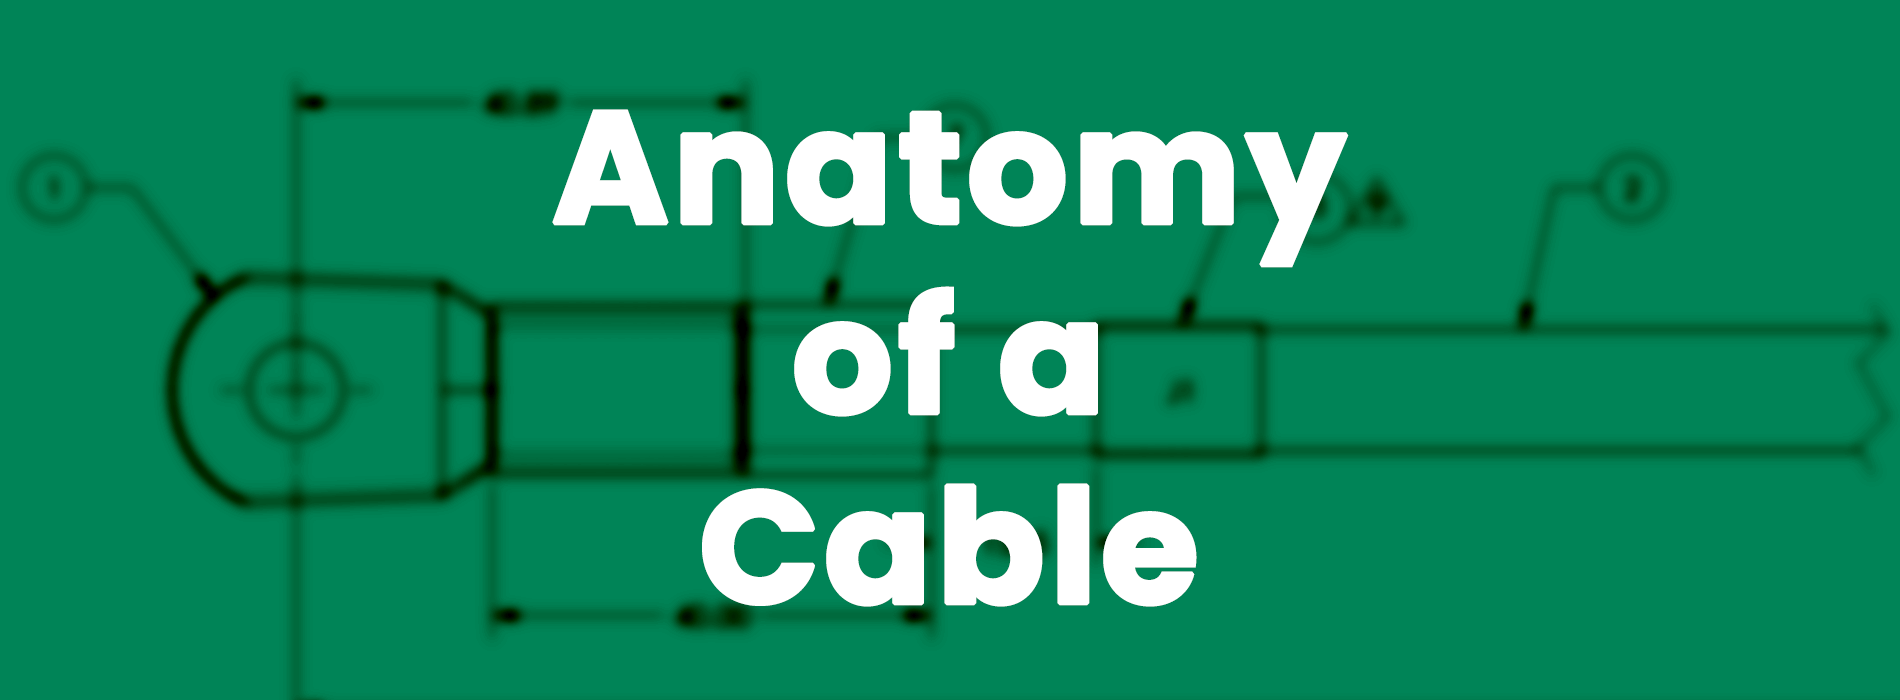 Anatomy of a cable graphic